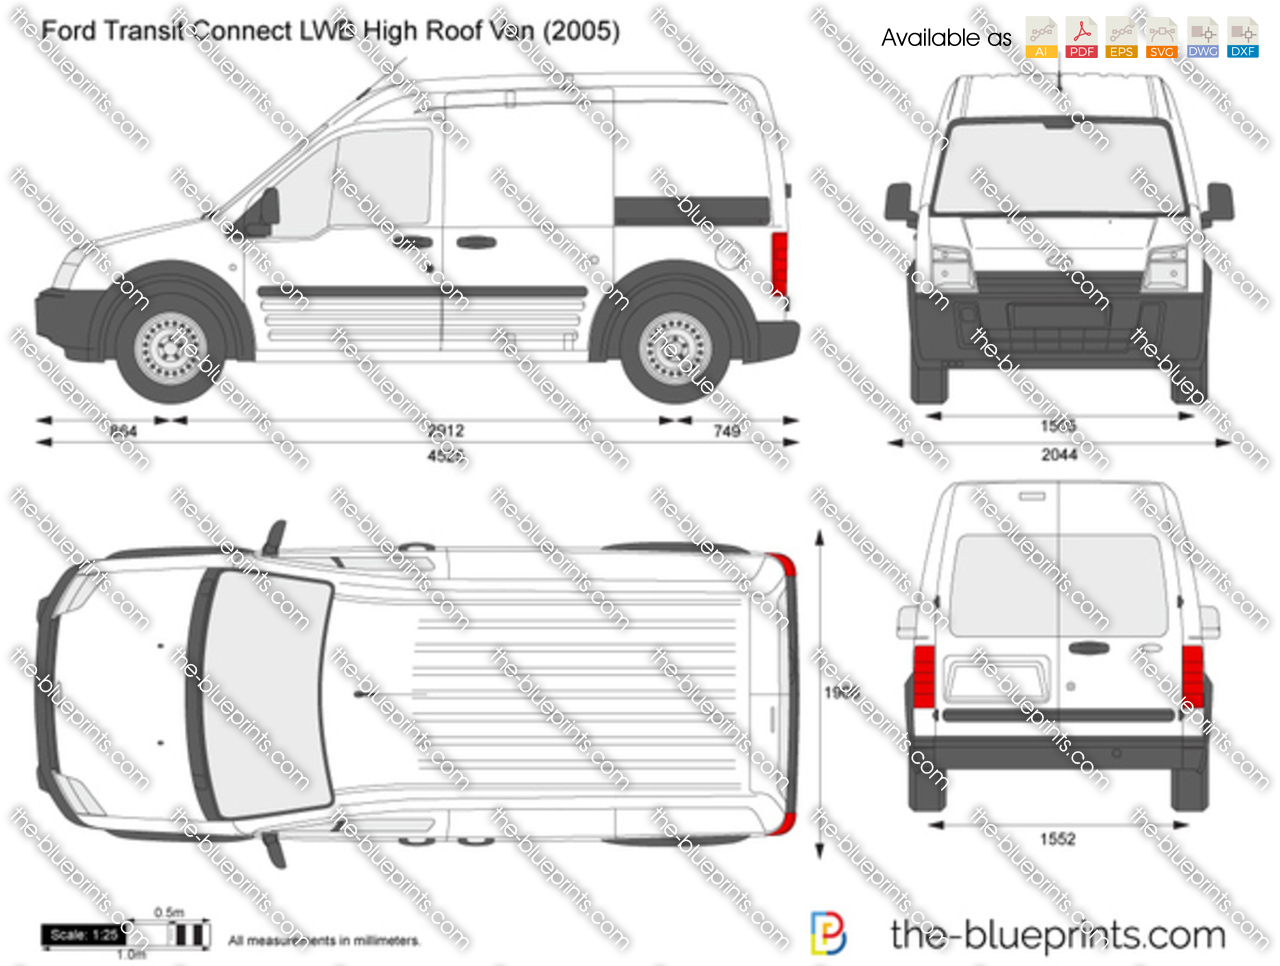 ford transit connect lwb high roof van vector drawing. Black Bedroom Furniture Sets. Home Design Ideas